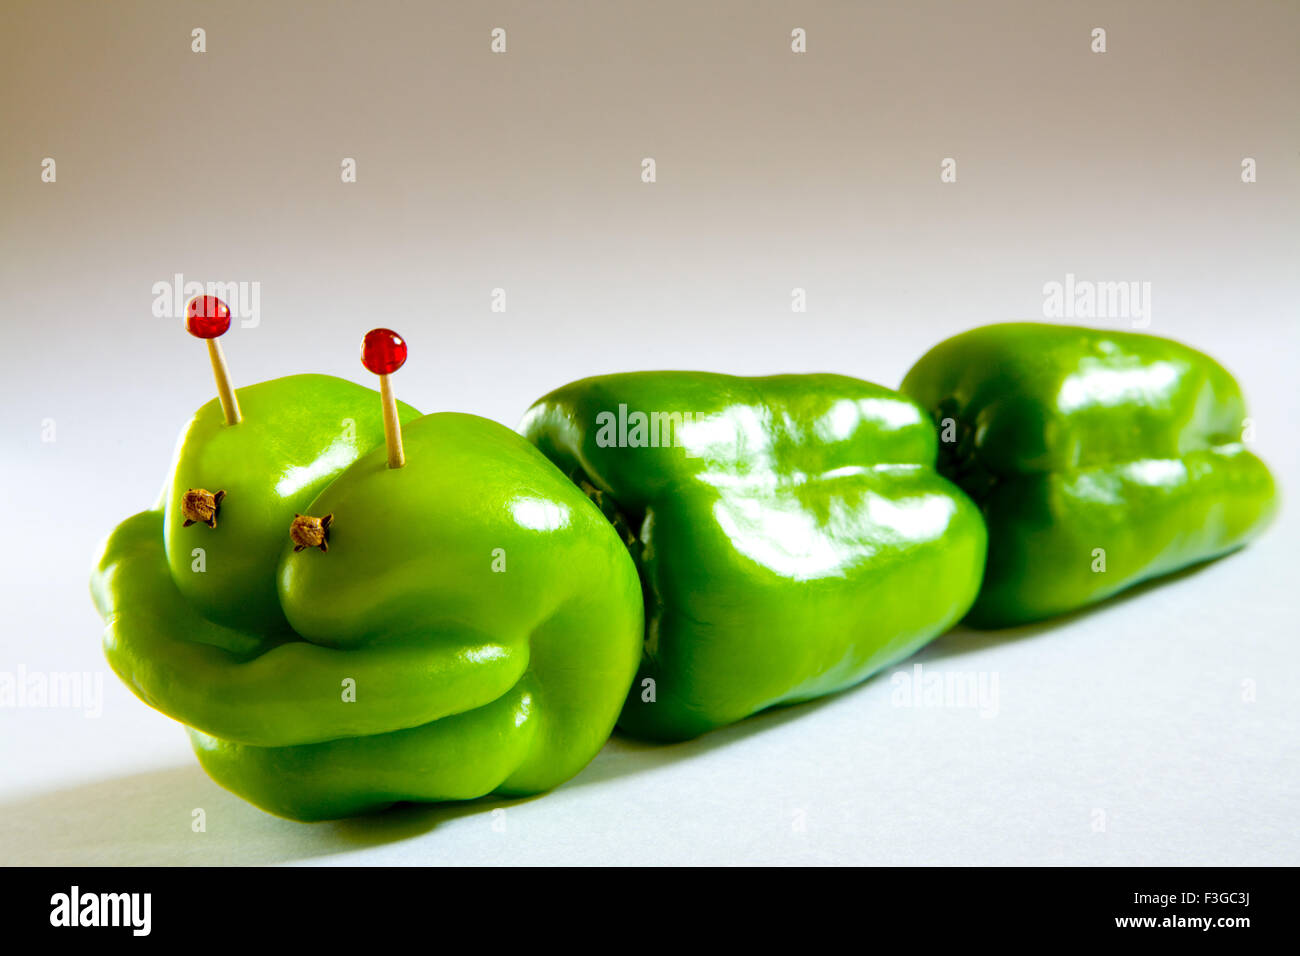 Alien capsicum concept creative modern toy on white background ; India - Stock Image